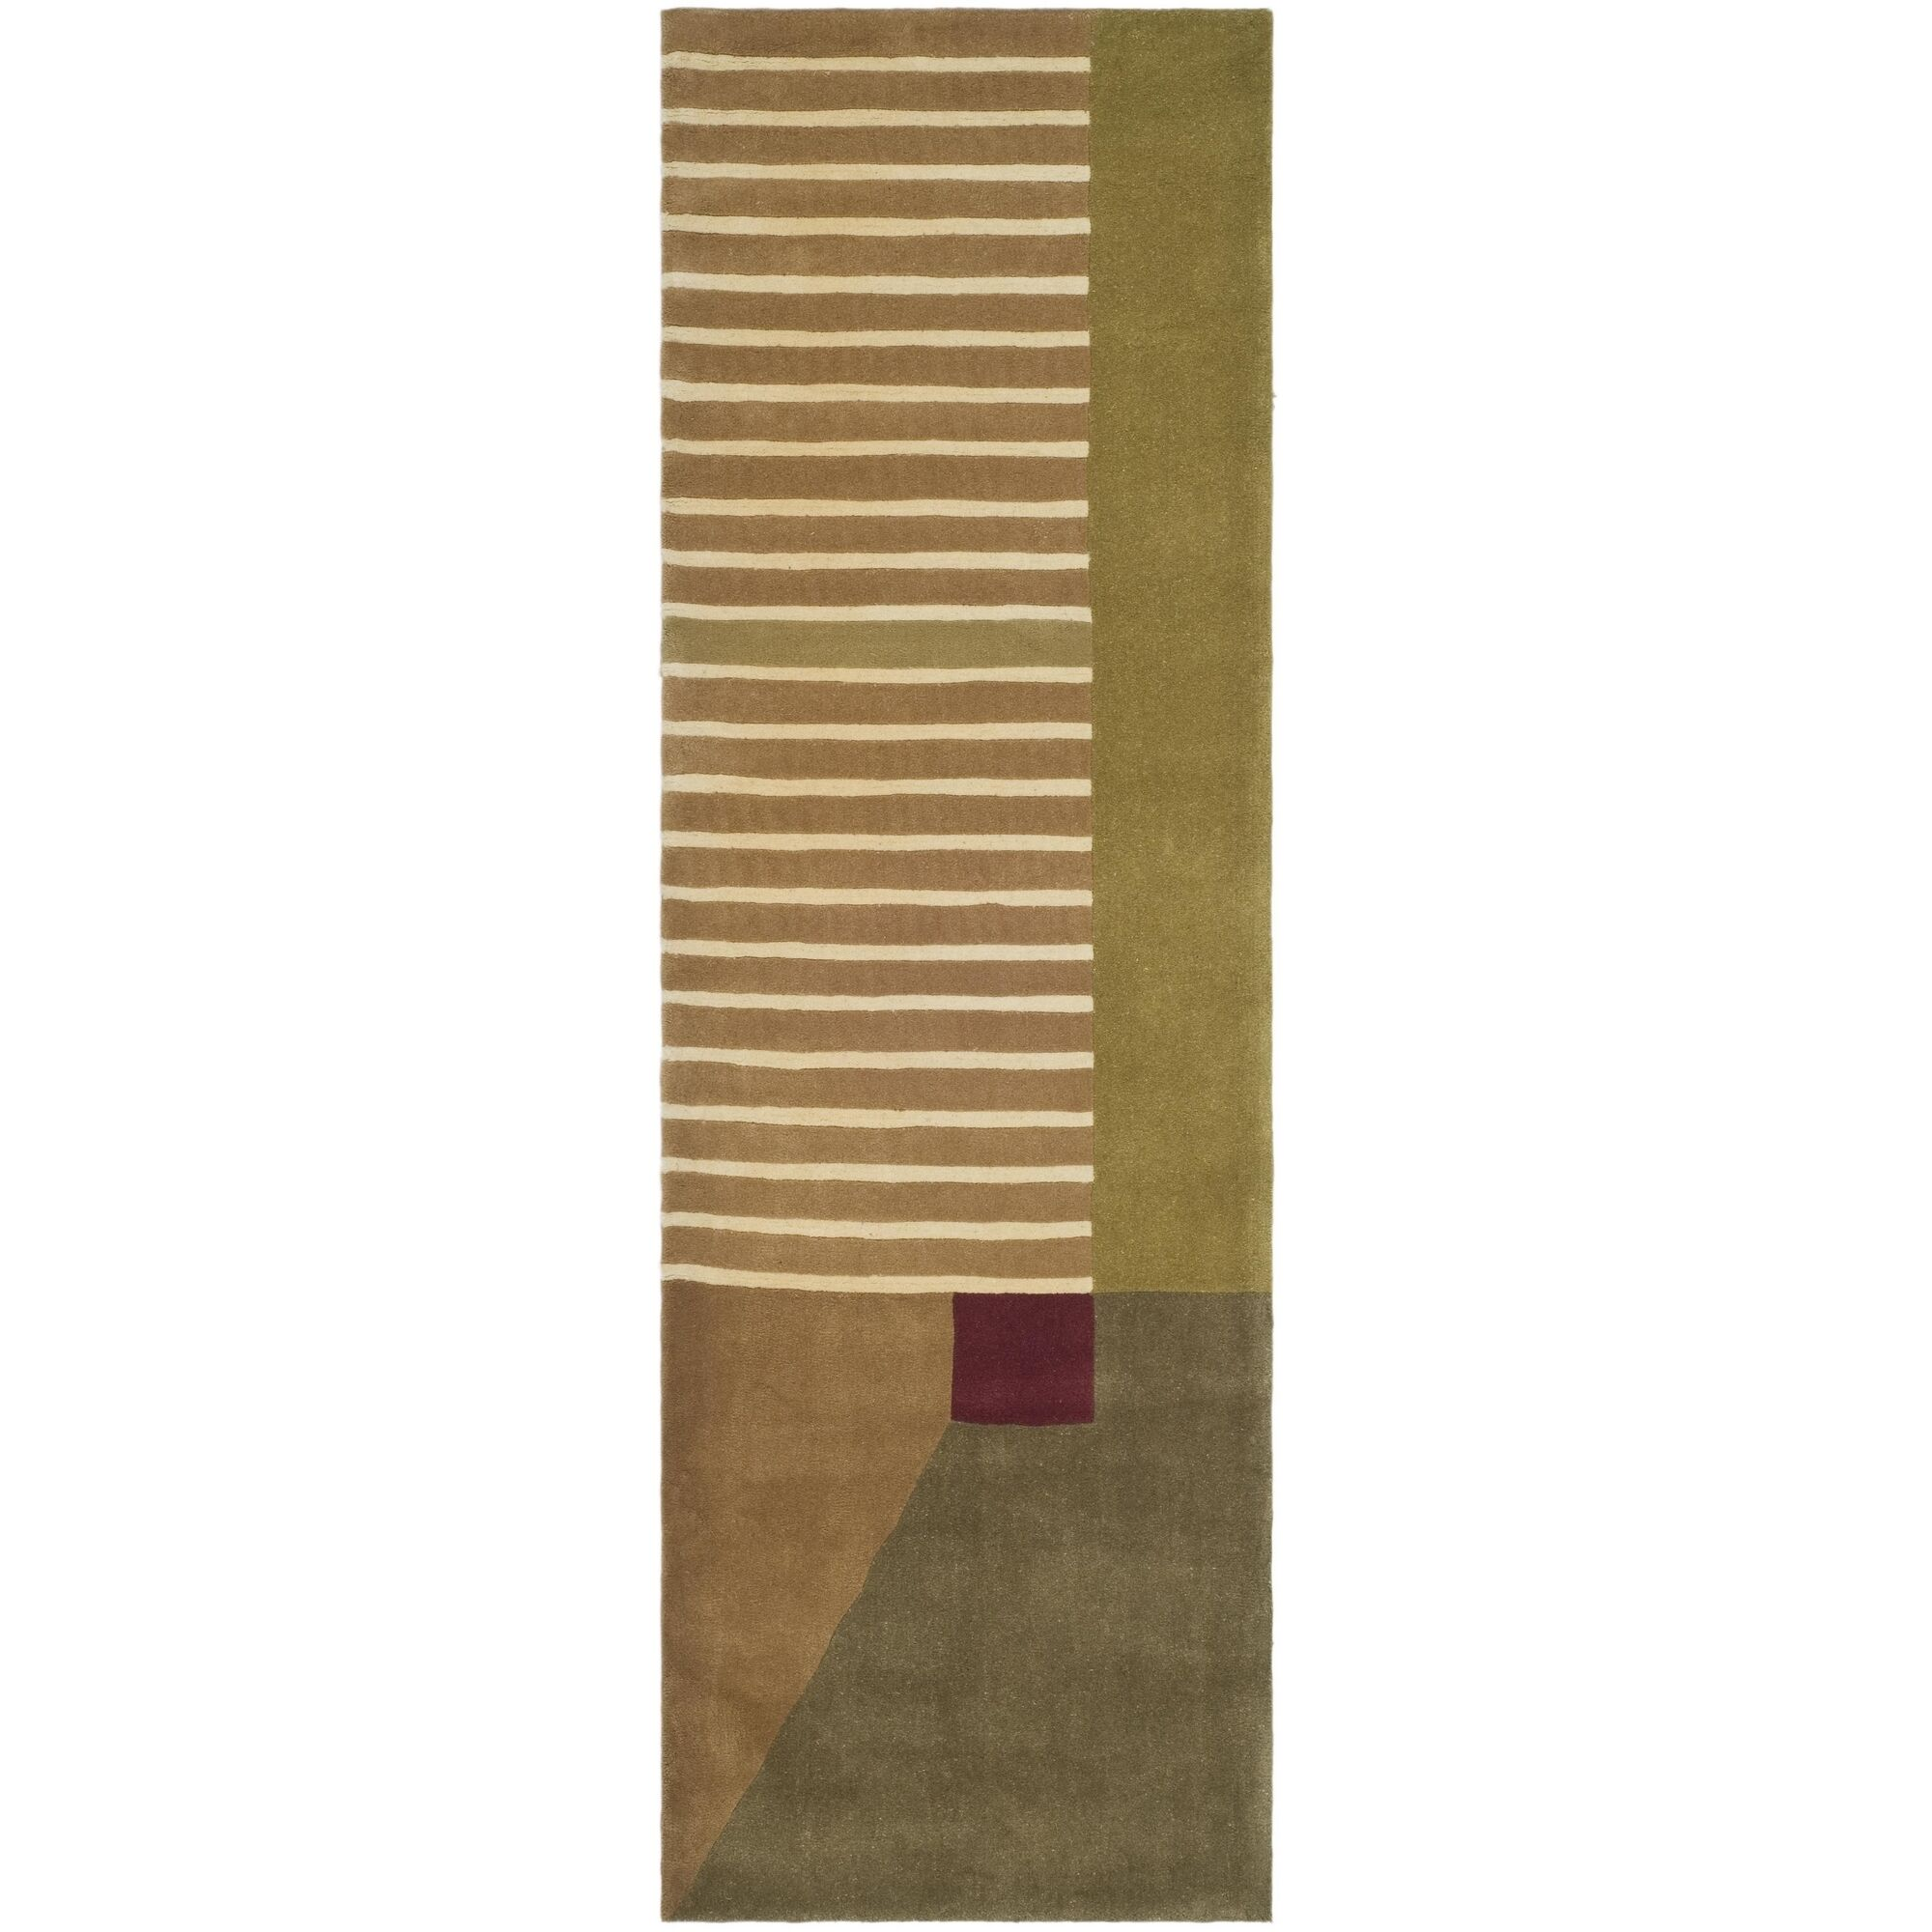 Rodeo Drive Trio Beige/Gold Area Rug Rug Size: Runner 2'6